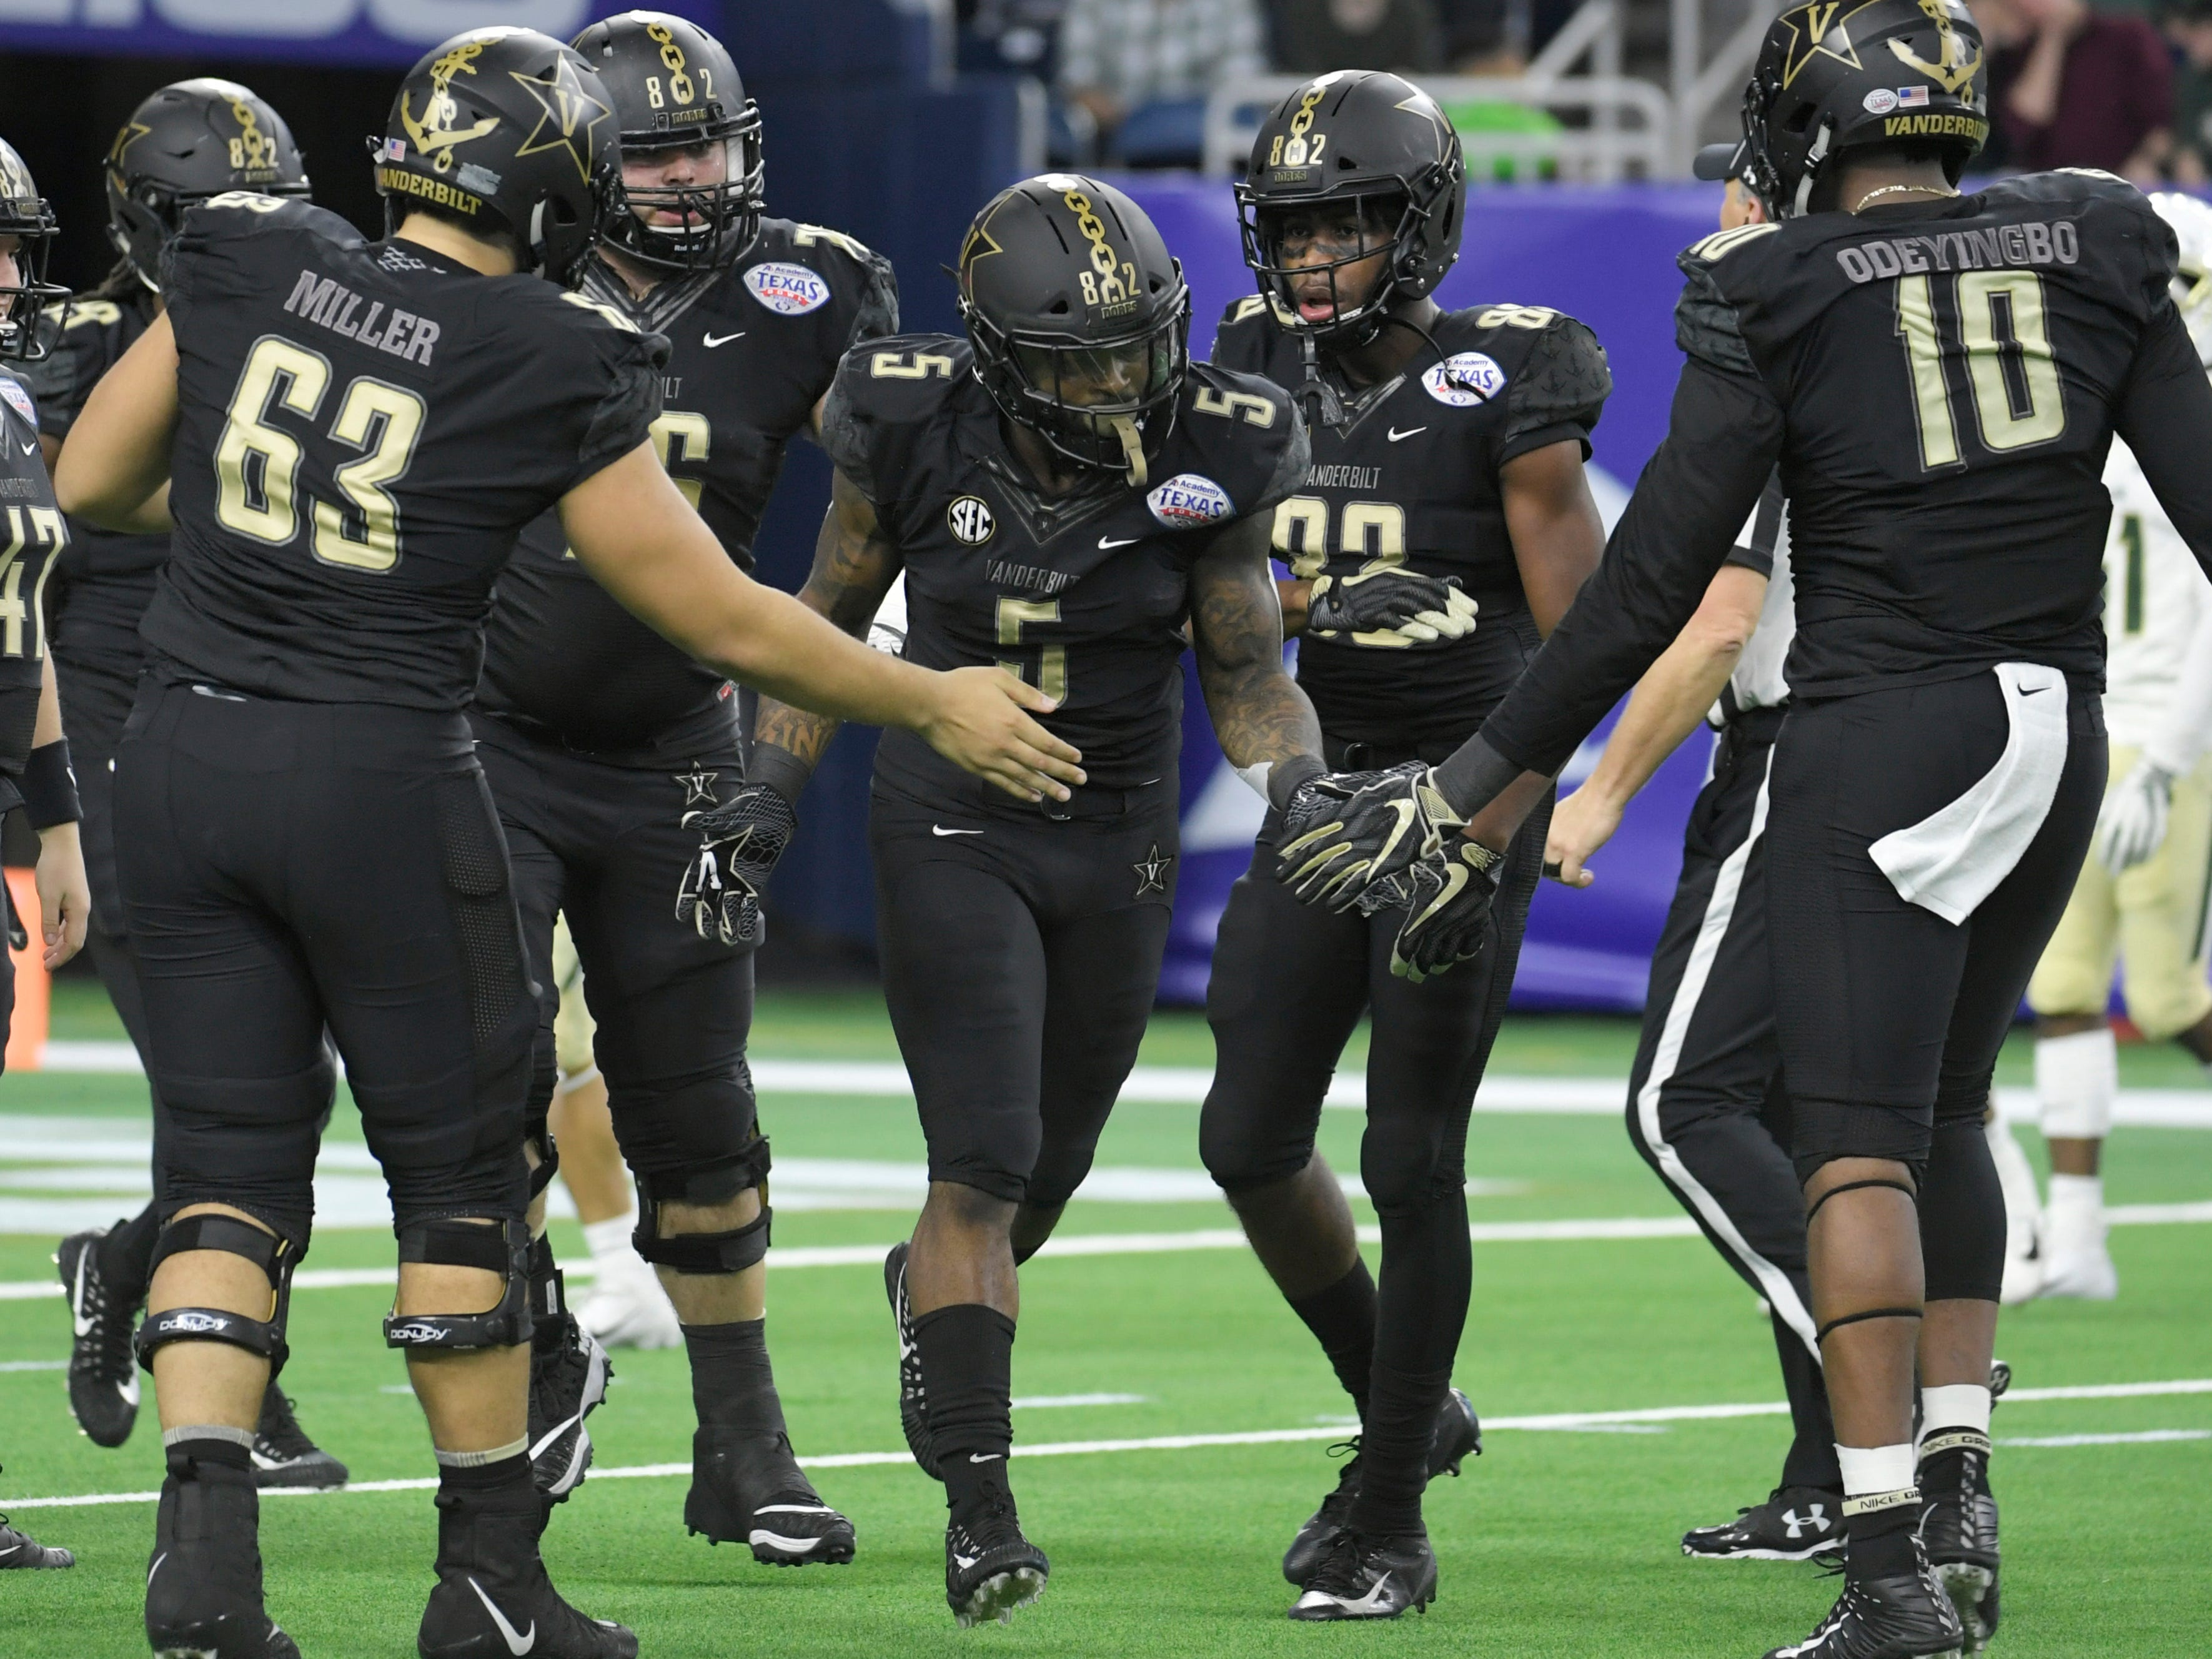 Vanderbilt Commodores running back Ke'Shawn Vaughn (5) is congratulated by his teammates after a 68-yard touchdown in the first quarter of the Academy Sports + Outdoors Texas Bowl at NRG Stadium in Houston on Thursday, Dec. 27, 2018.